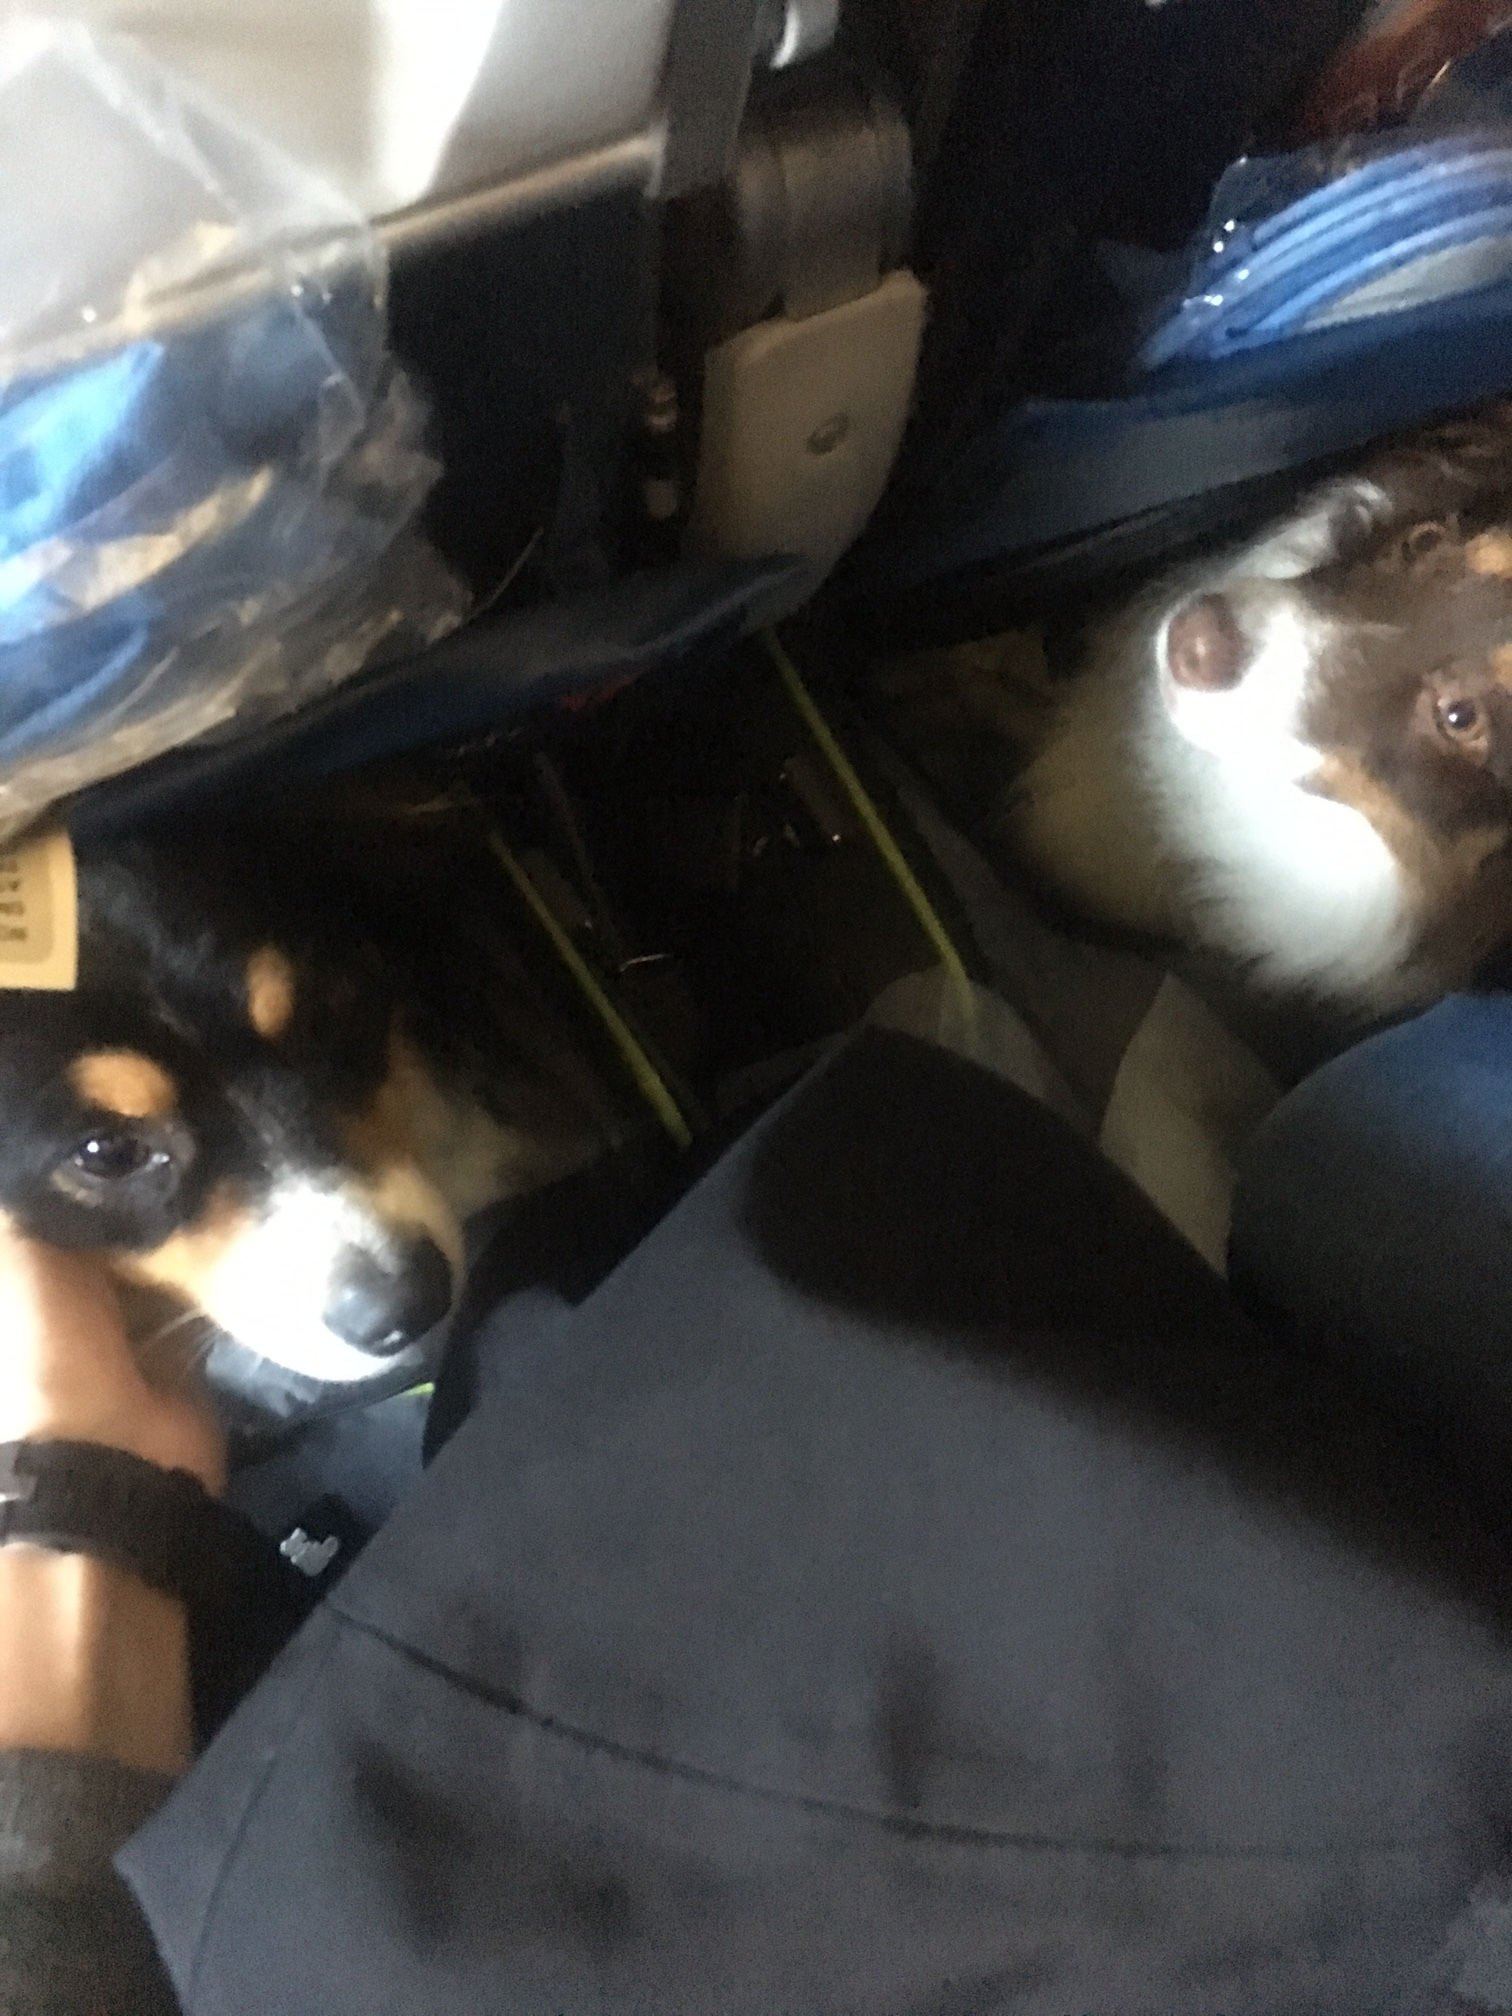 PCS-with-dogs-carry-on-carriers-schuyler-croy-4.JPG